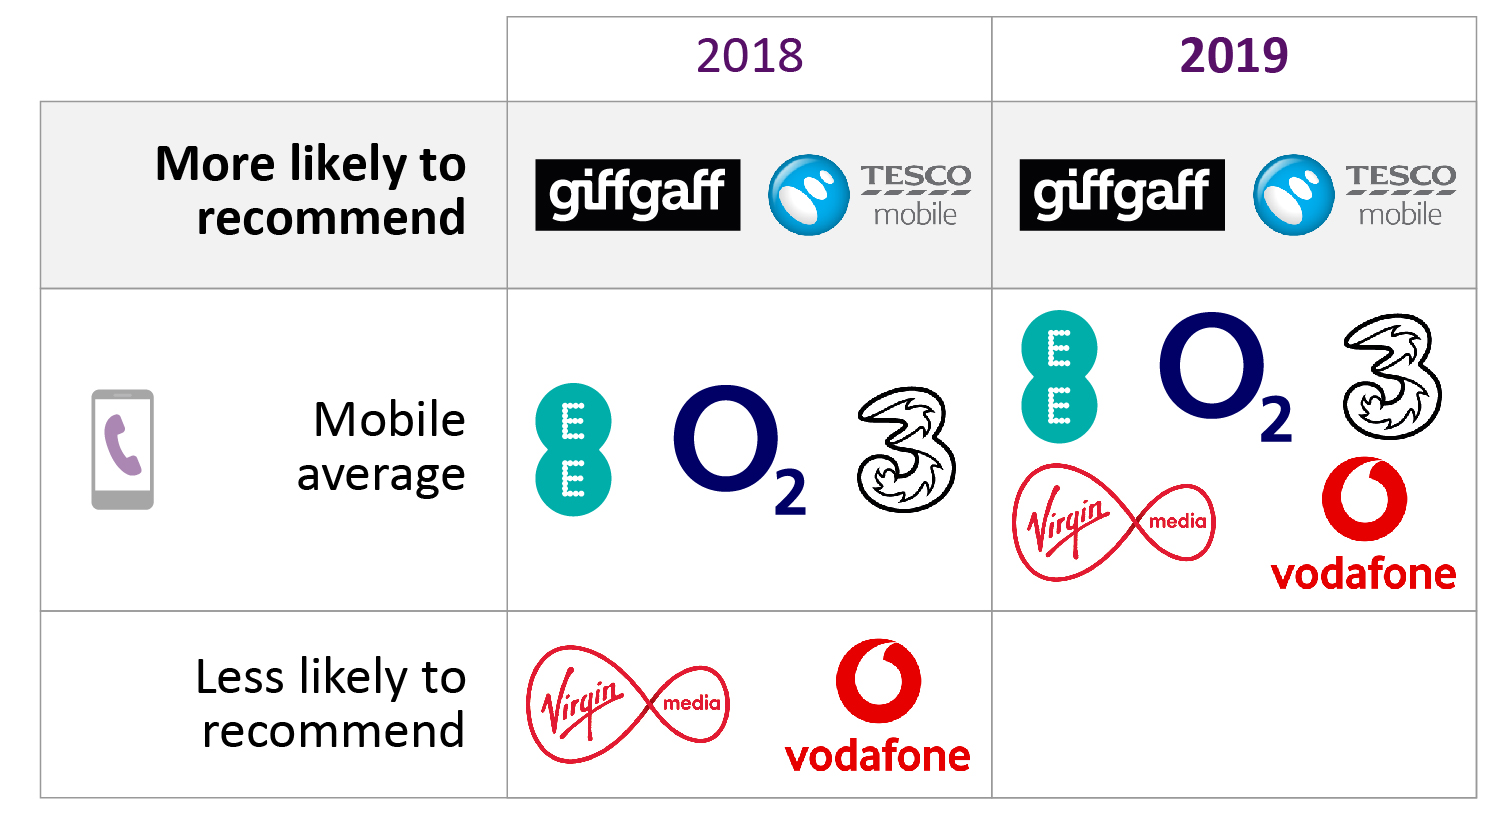 In 2019, customers were more likely to recommend giffgaff and Tesco Mobile.